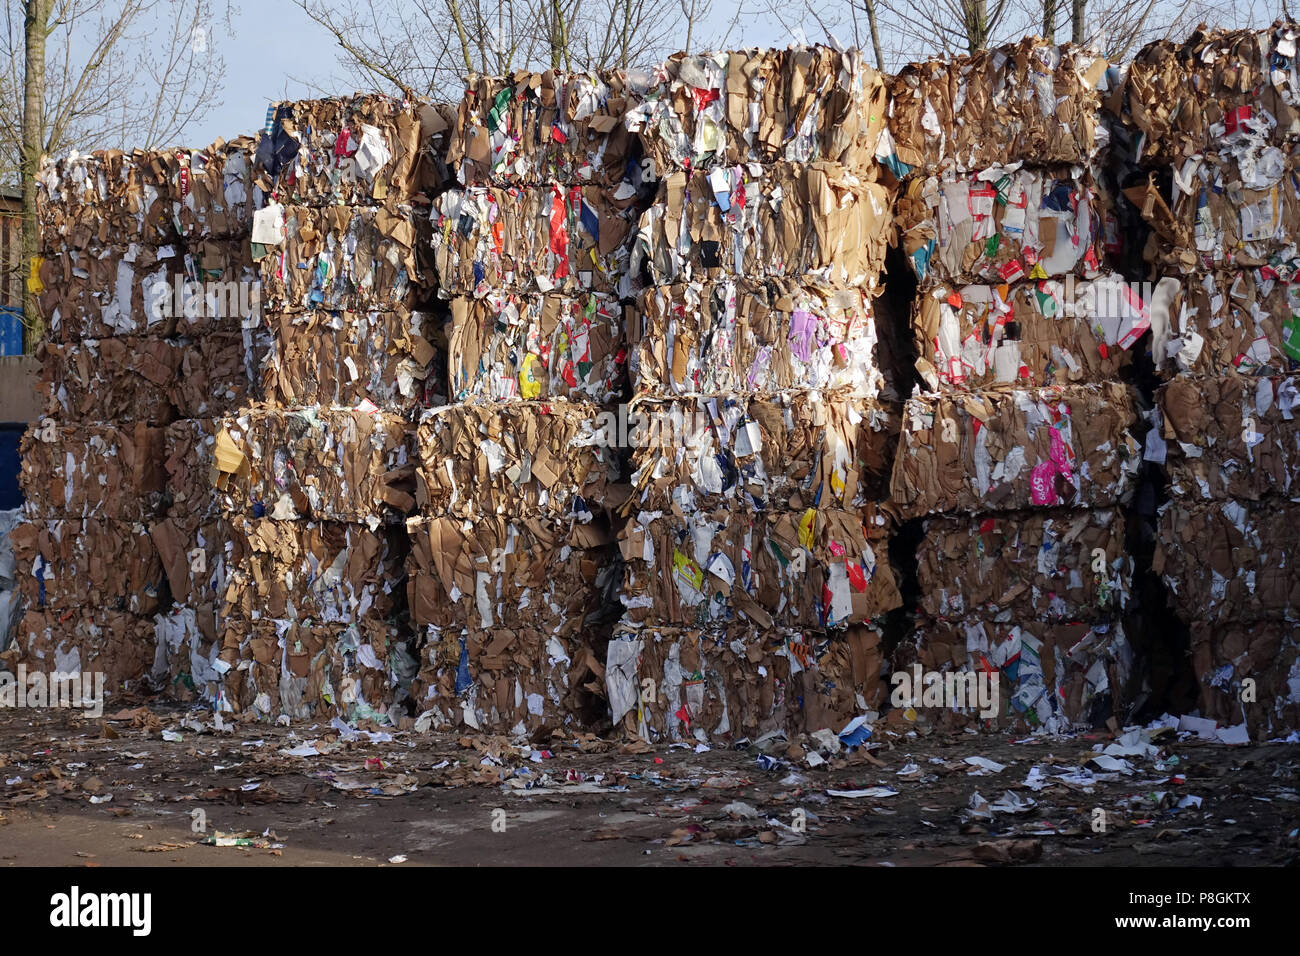 Berlin, Germany, in square format pressed waste paper on a landfill - Stock Image